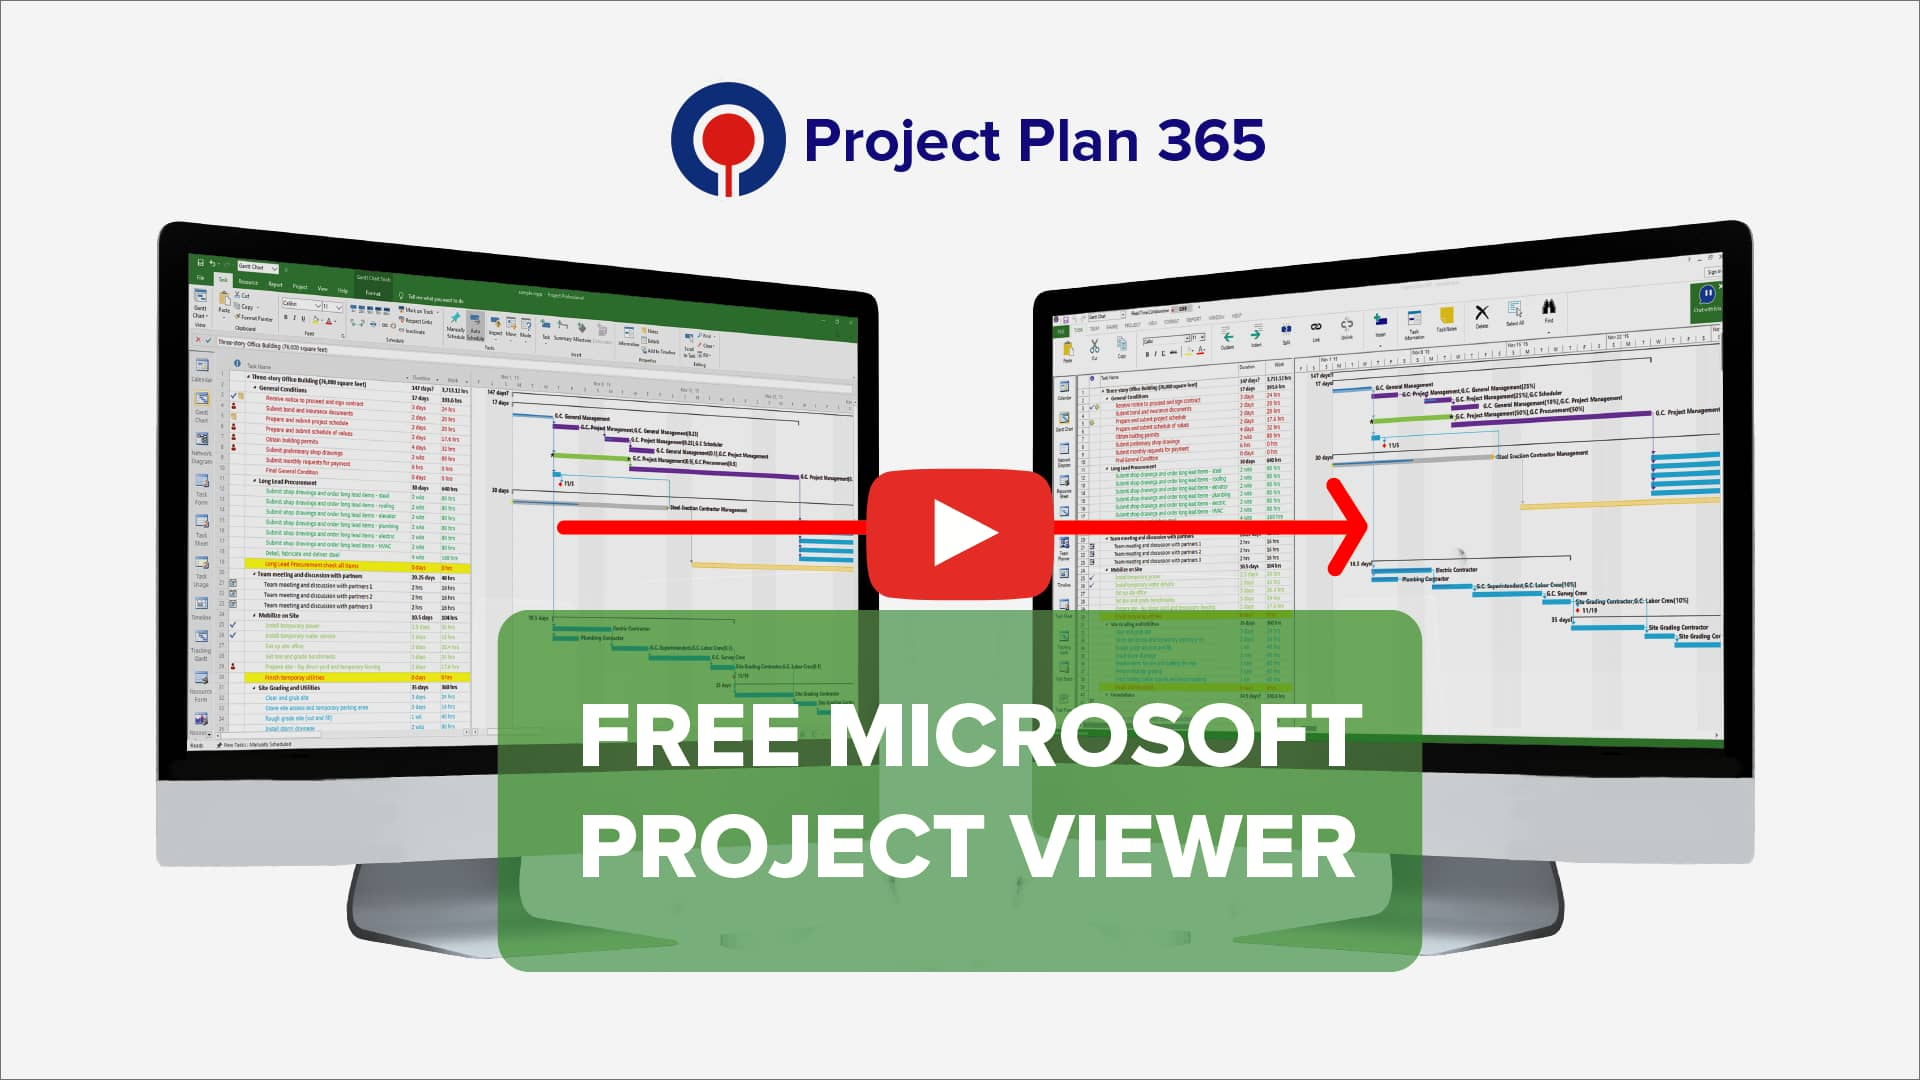 Free Viewer for Microsoft Project